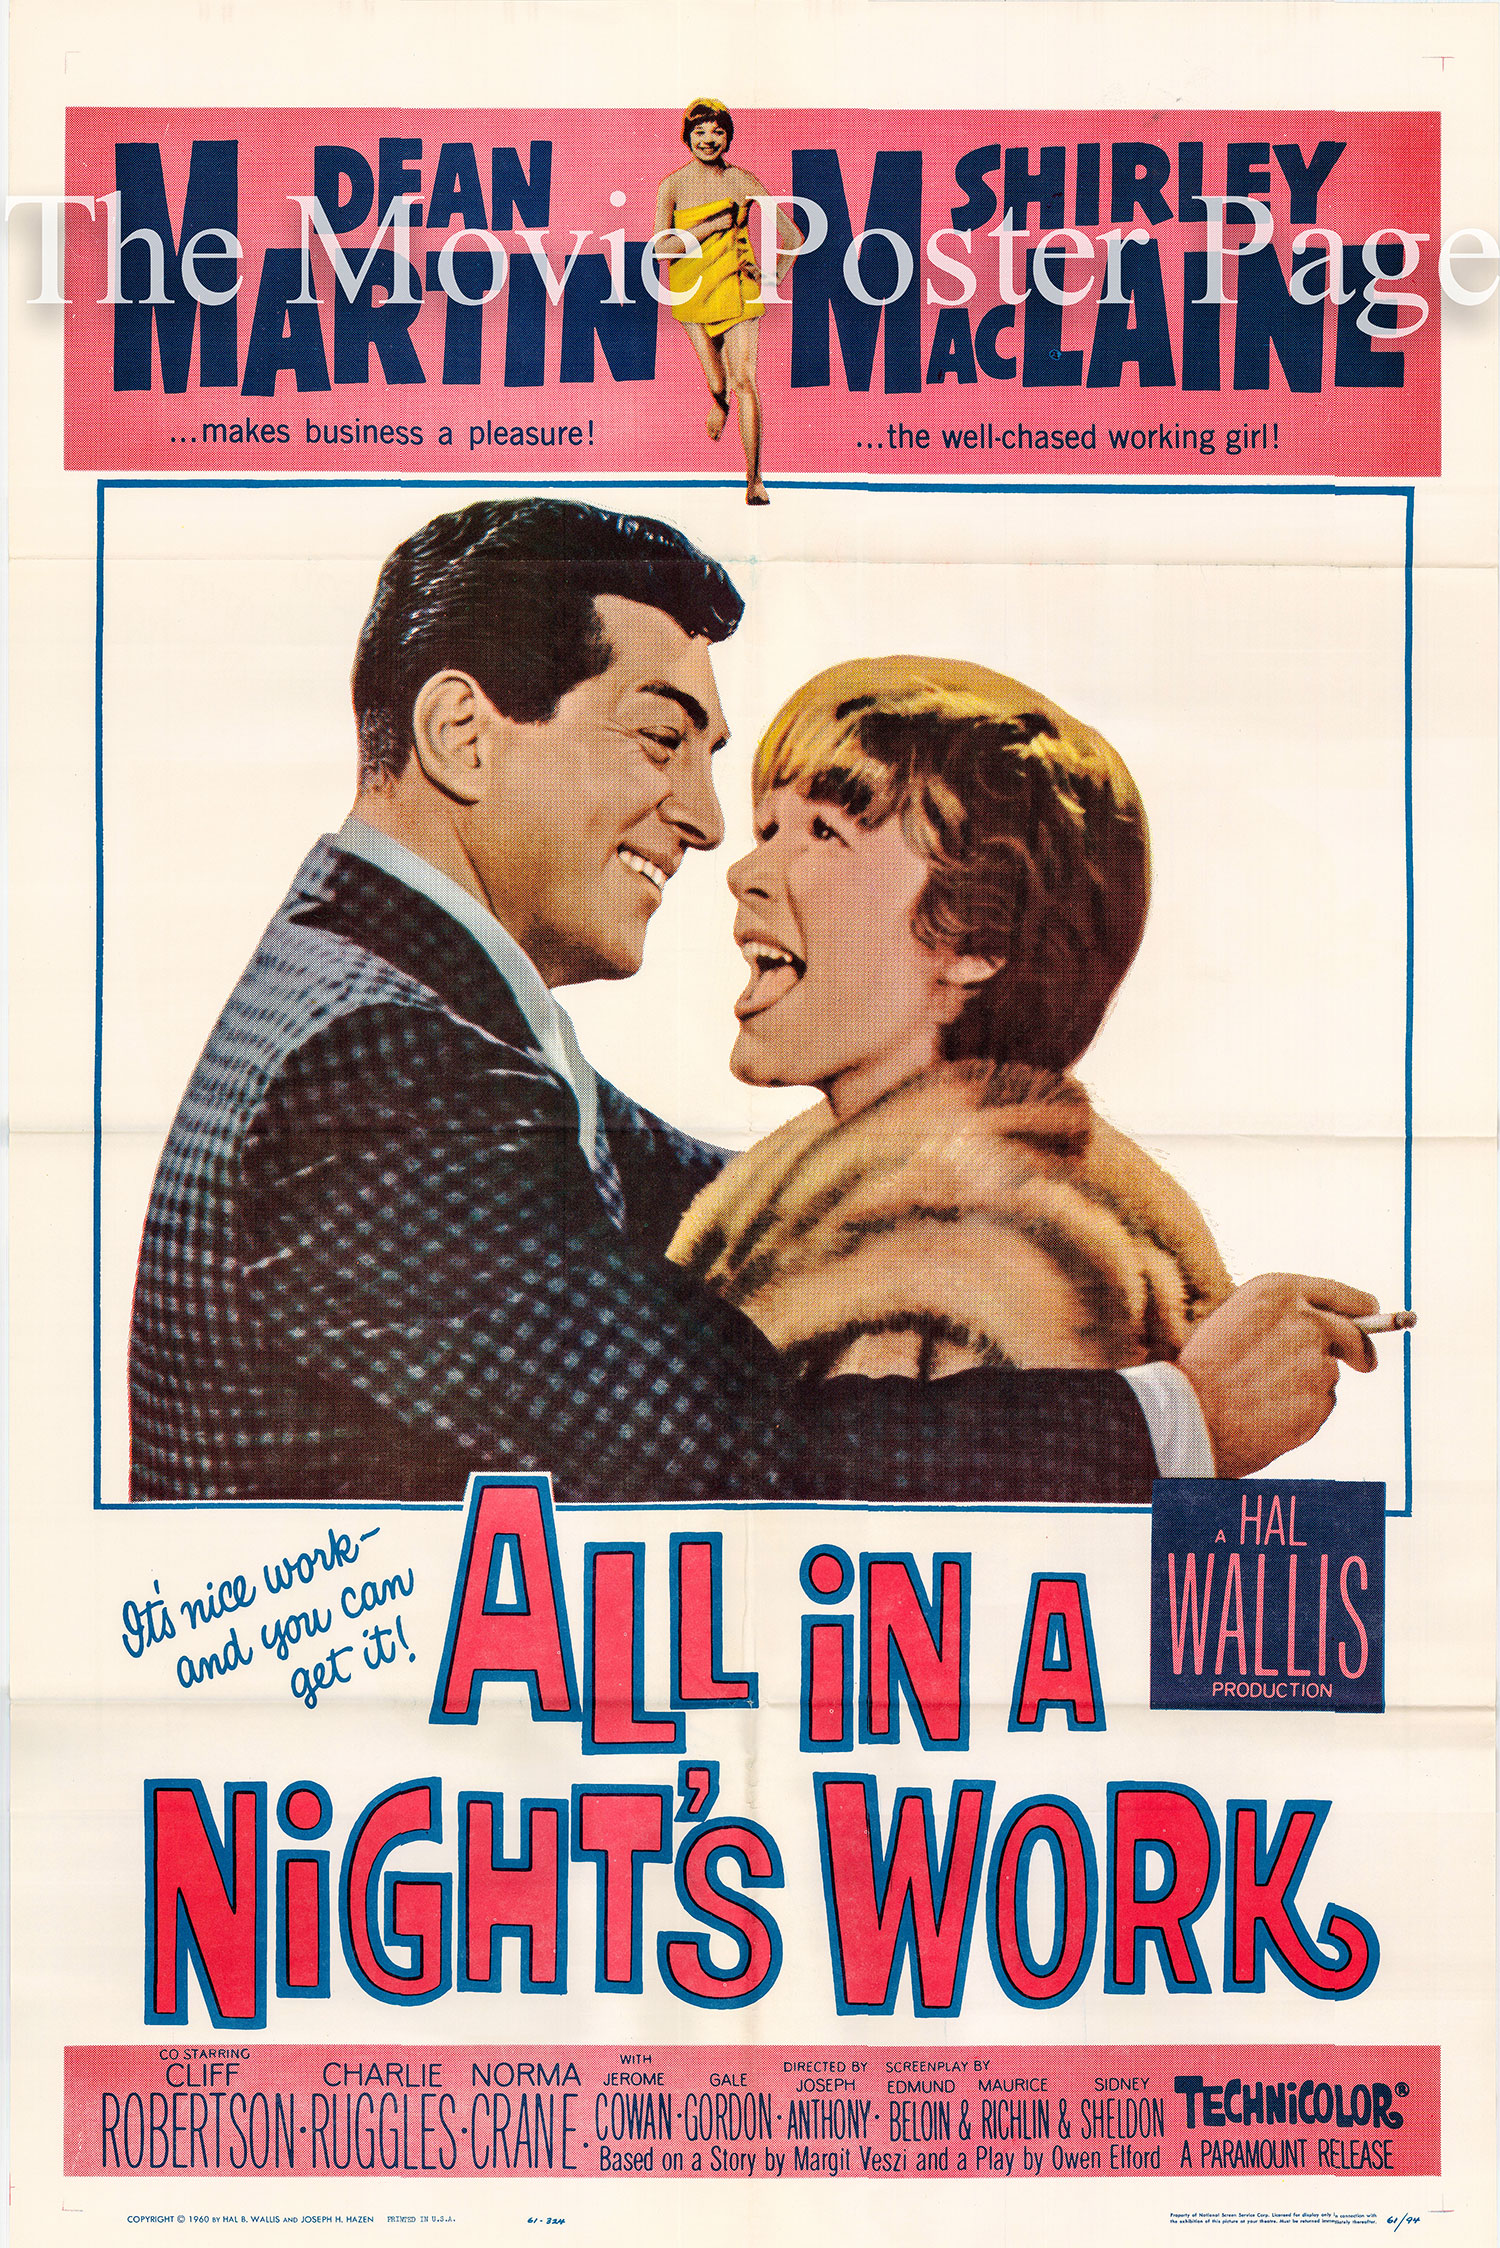 Pictured is a US one-sheet poster for the 1961 Joseph Anthony film <i>All in a Night's Work</i> starring Dean Martin.